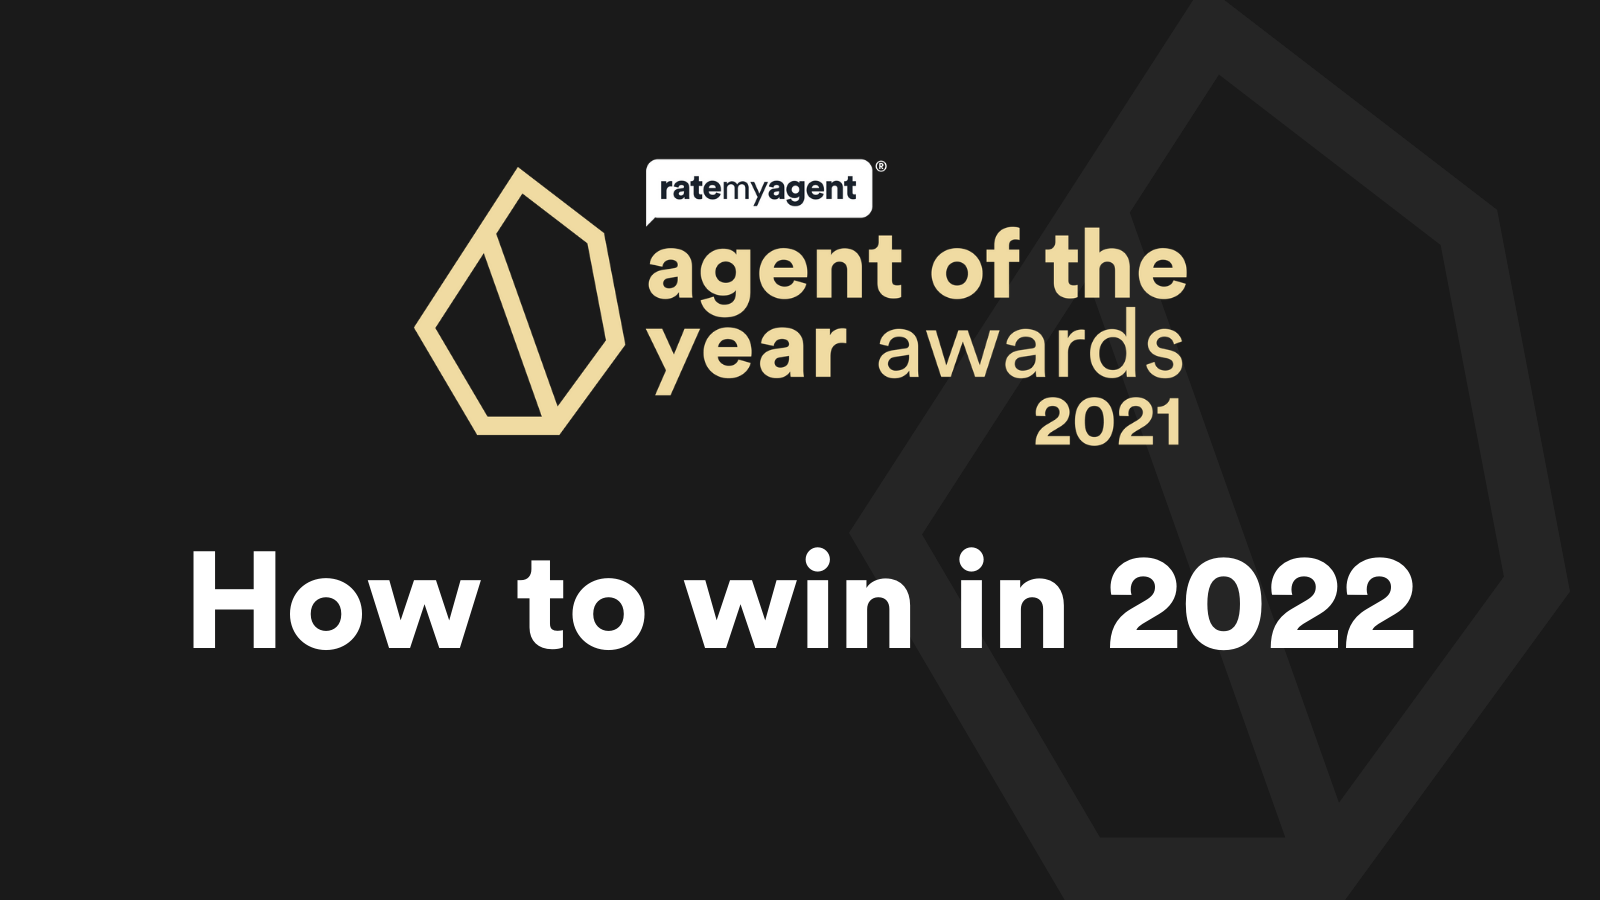 How to win Agent of the Year in 2022